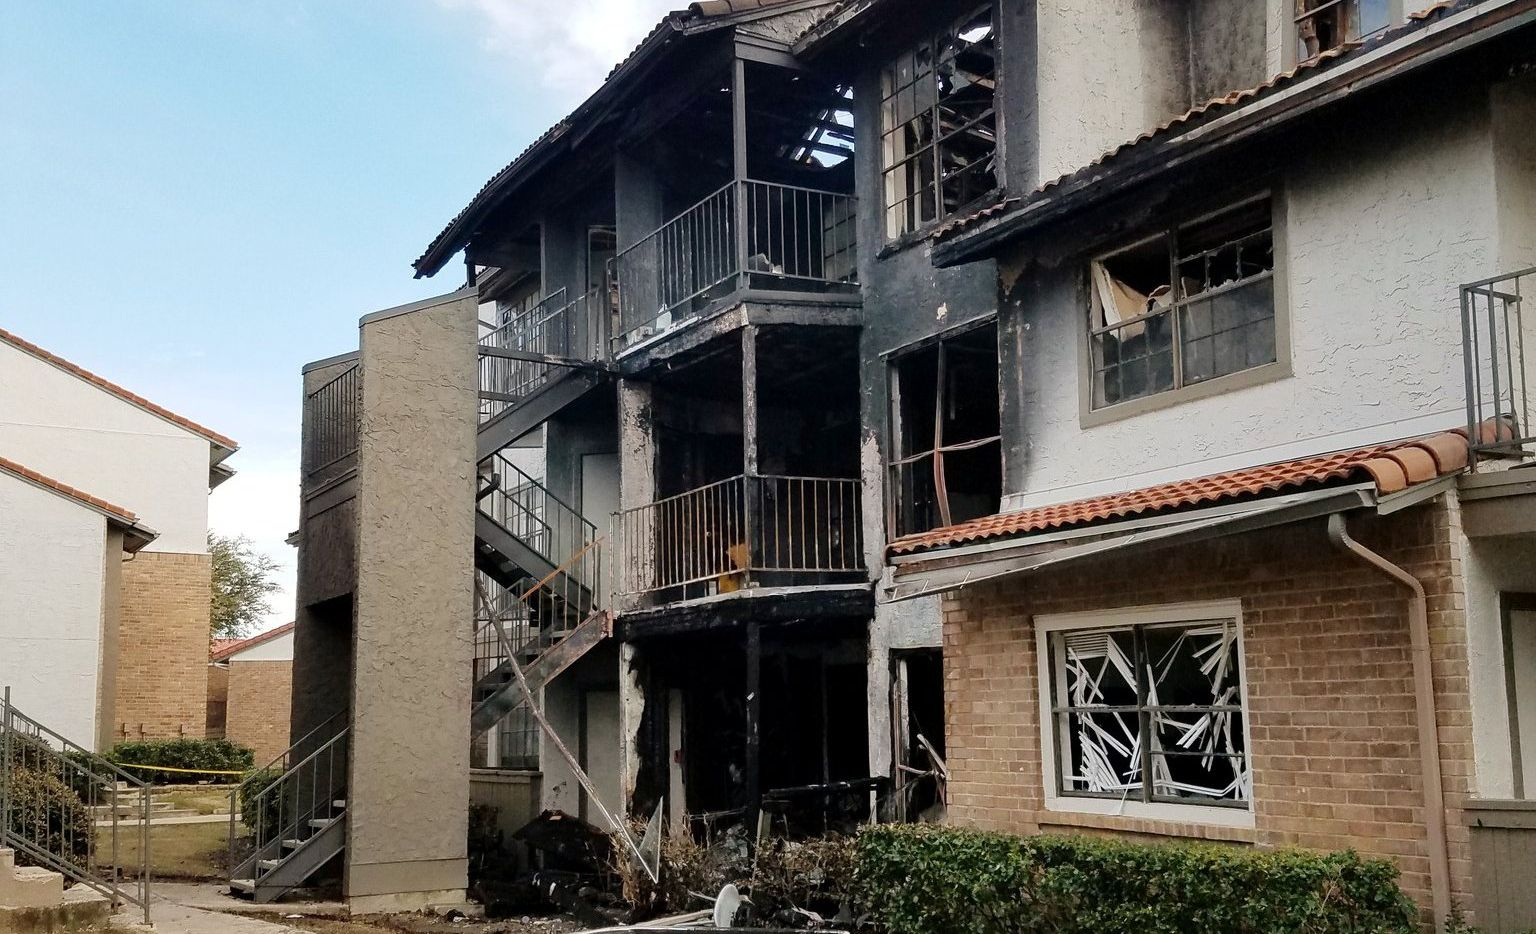 Ten units at the apartment complex in the 1200 block of N. Meadow Creek Drive in Irving were affected by a blaze Saturday, February 29, according to the Irving Fire Department.